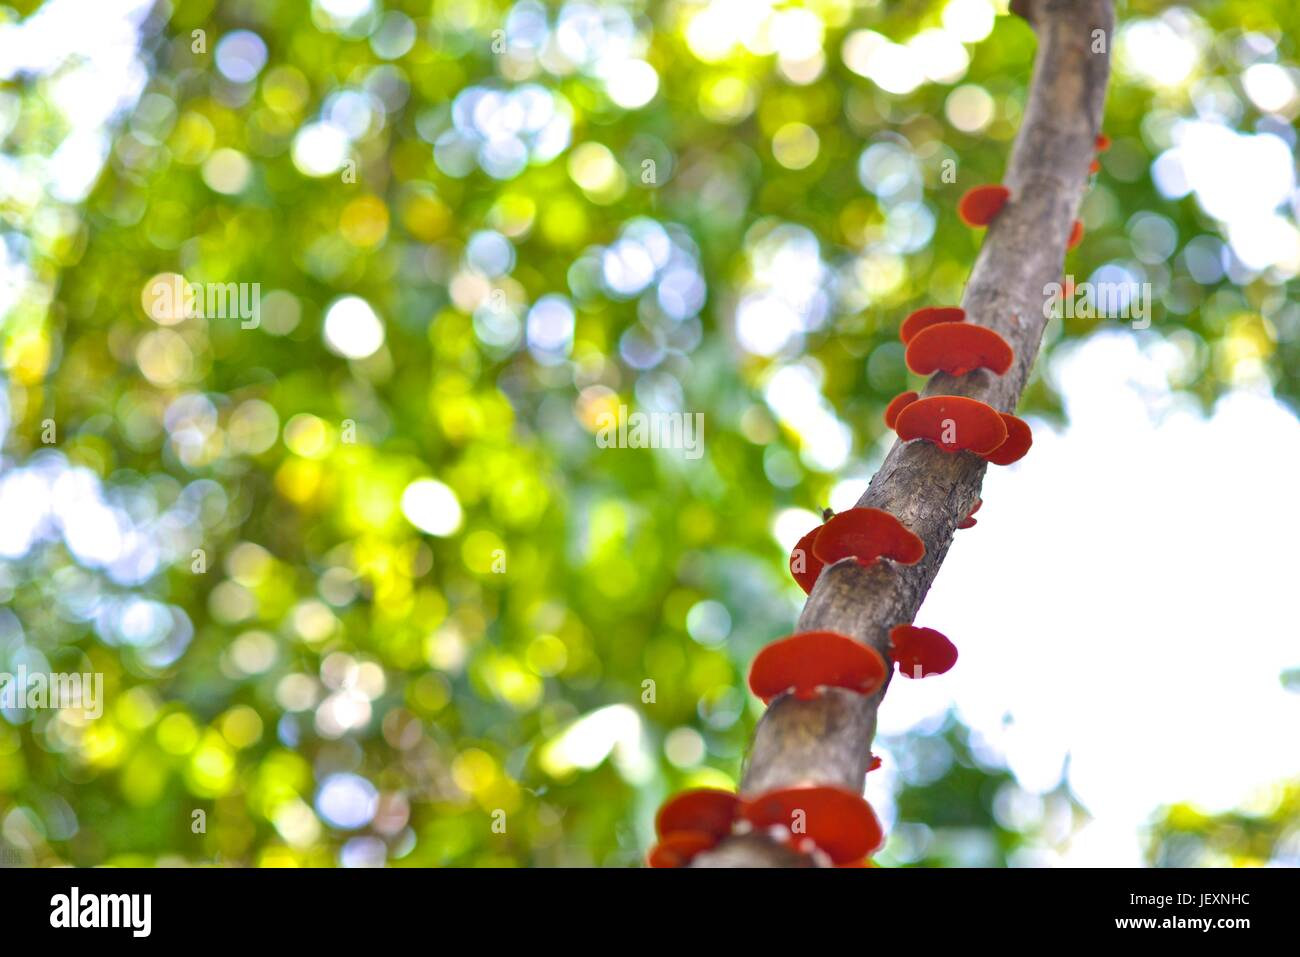 Red fungi grows on a tree branch in the Poco das Antas Biological Reserve. Stock Photo